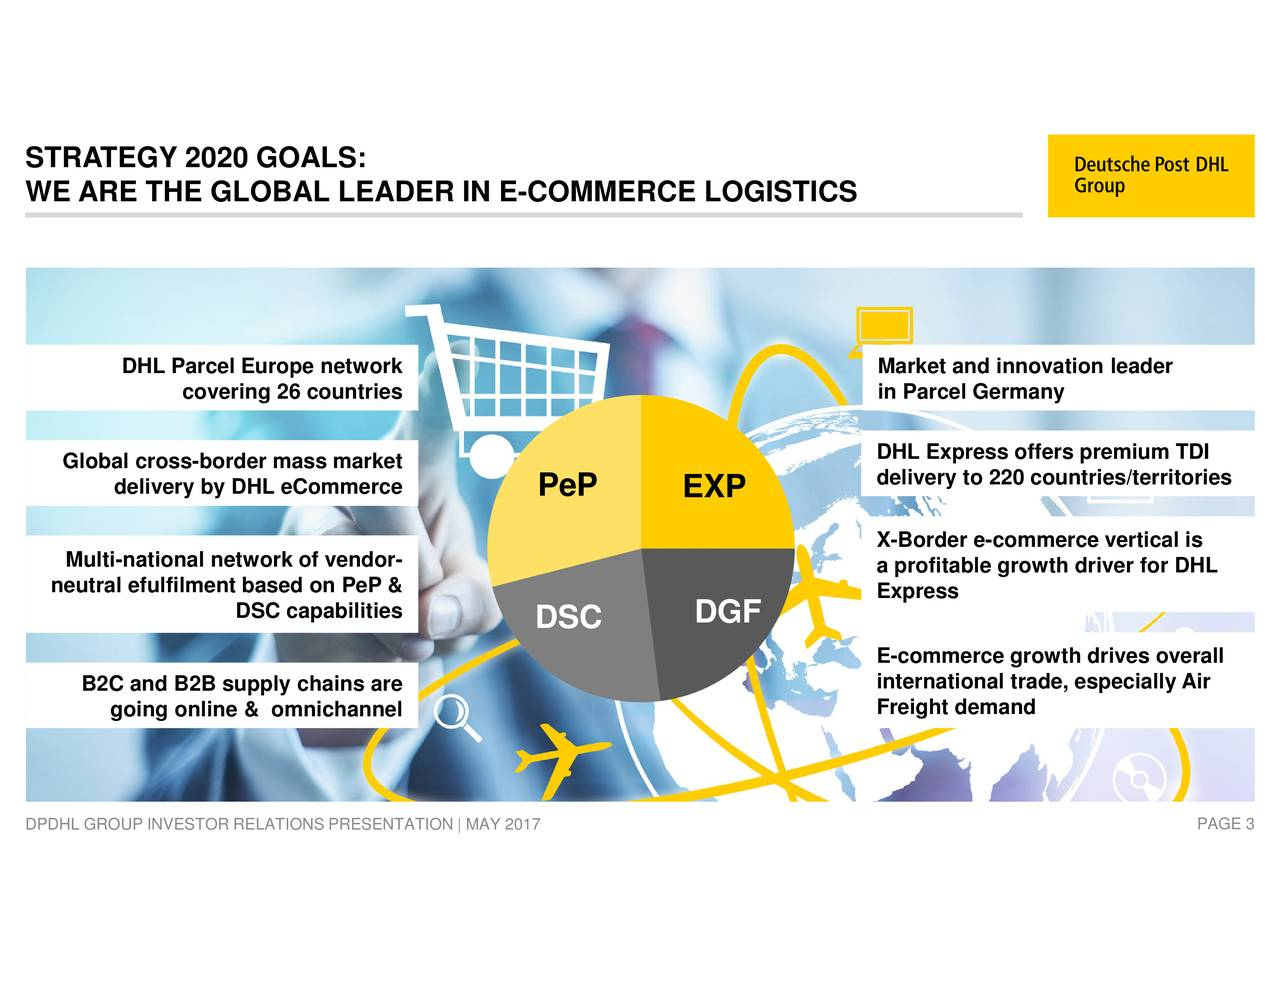 MainkPtrDHLelxpr-aoodeicou-treeratorgtcalie,rLescivlrAllir EXP DGF PeP DSC 017 DSC capabilities covering 26 countries DHL Parcel Europe network delivery by DHL eCogoing online & omnichannel B2C and B2B supply chains are Global cross-border mass marketof vendor- neutral efulfilment based on PeP & STWRAETAEG YT 20E0G GOOABLAL:LEADER IN E-COMMER DPEHLGROUPIITECTSR RELATIONS PRESENTATION | MAY 2